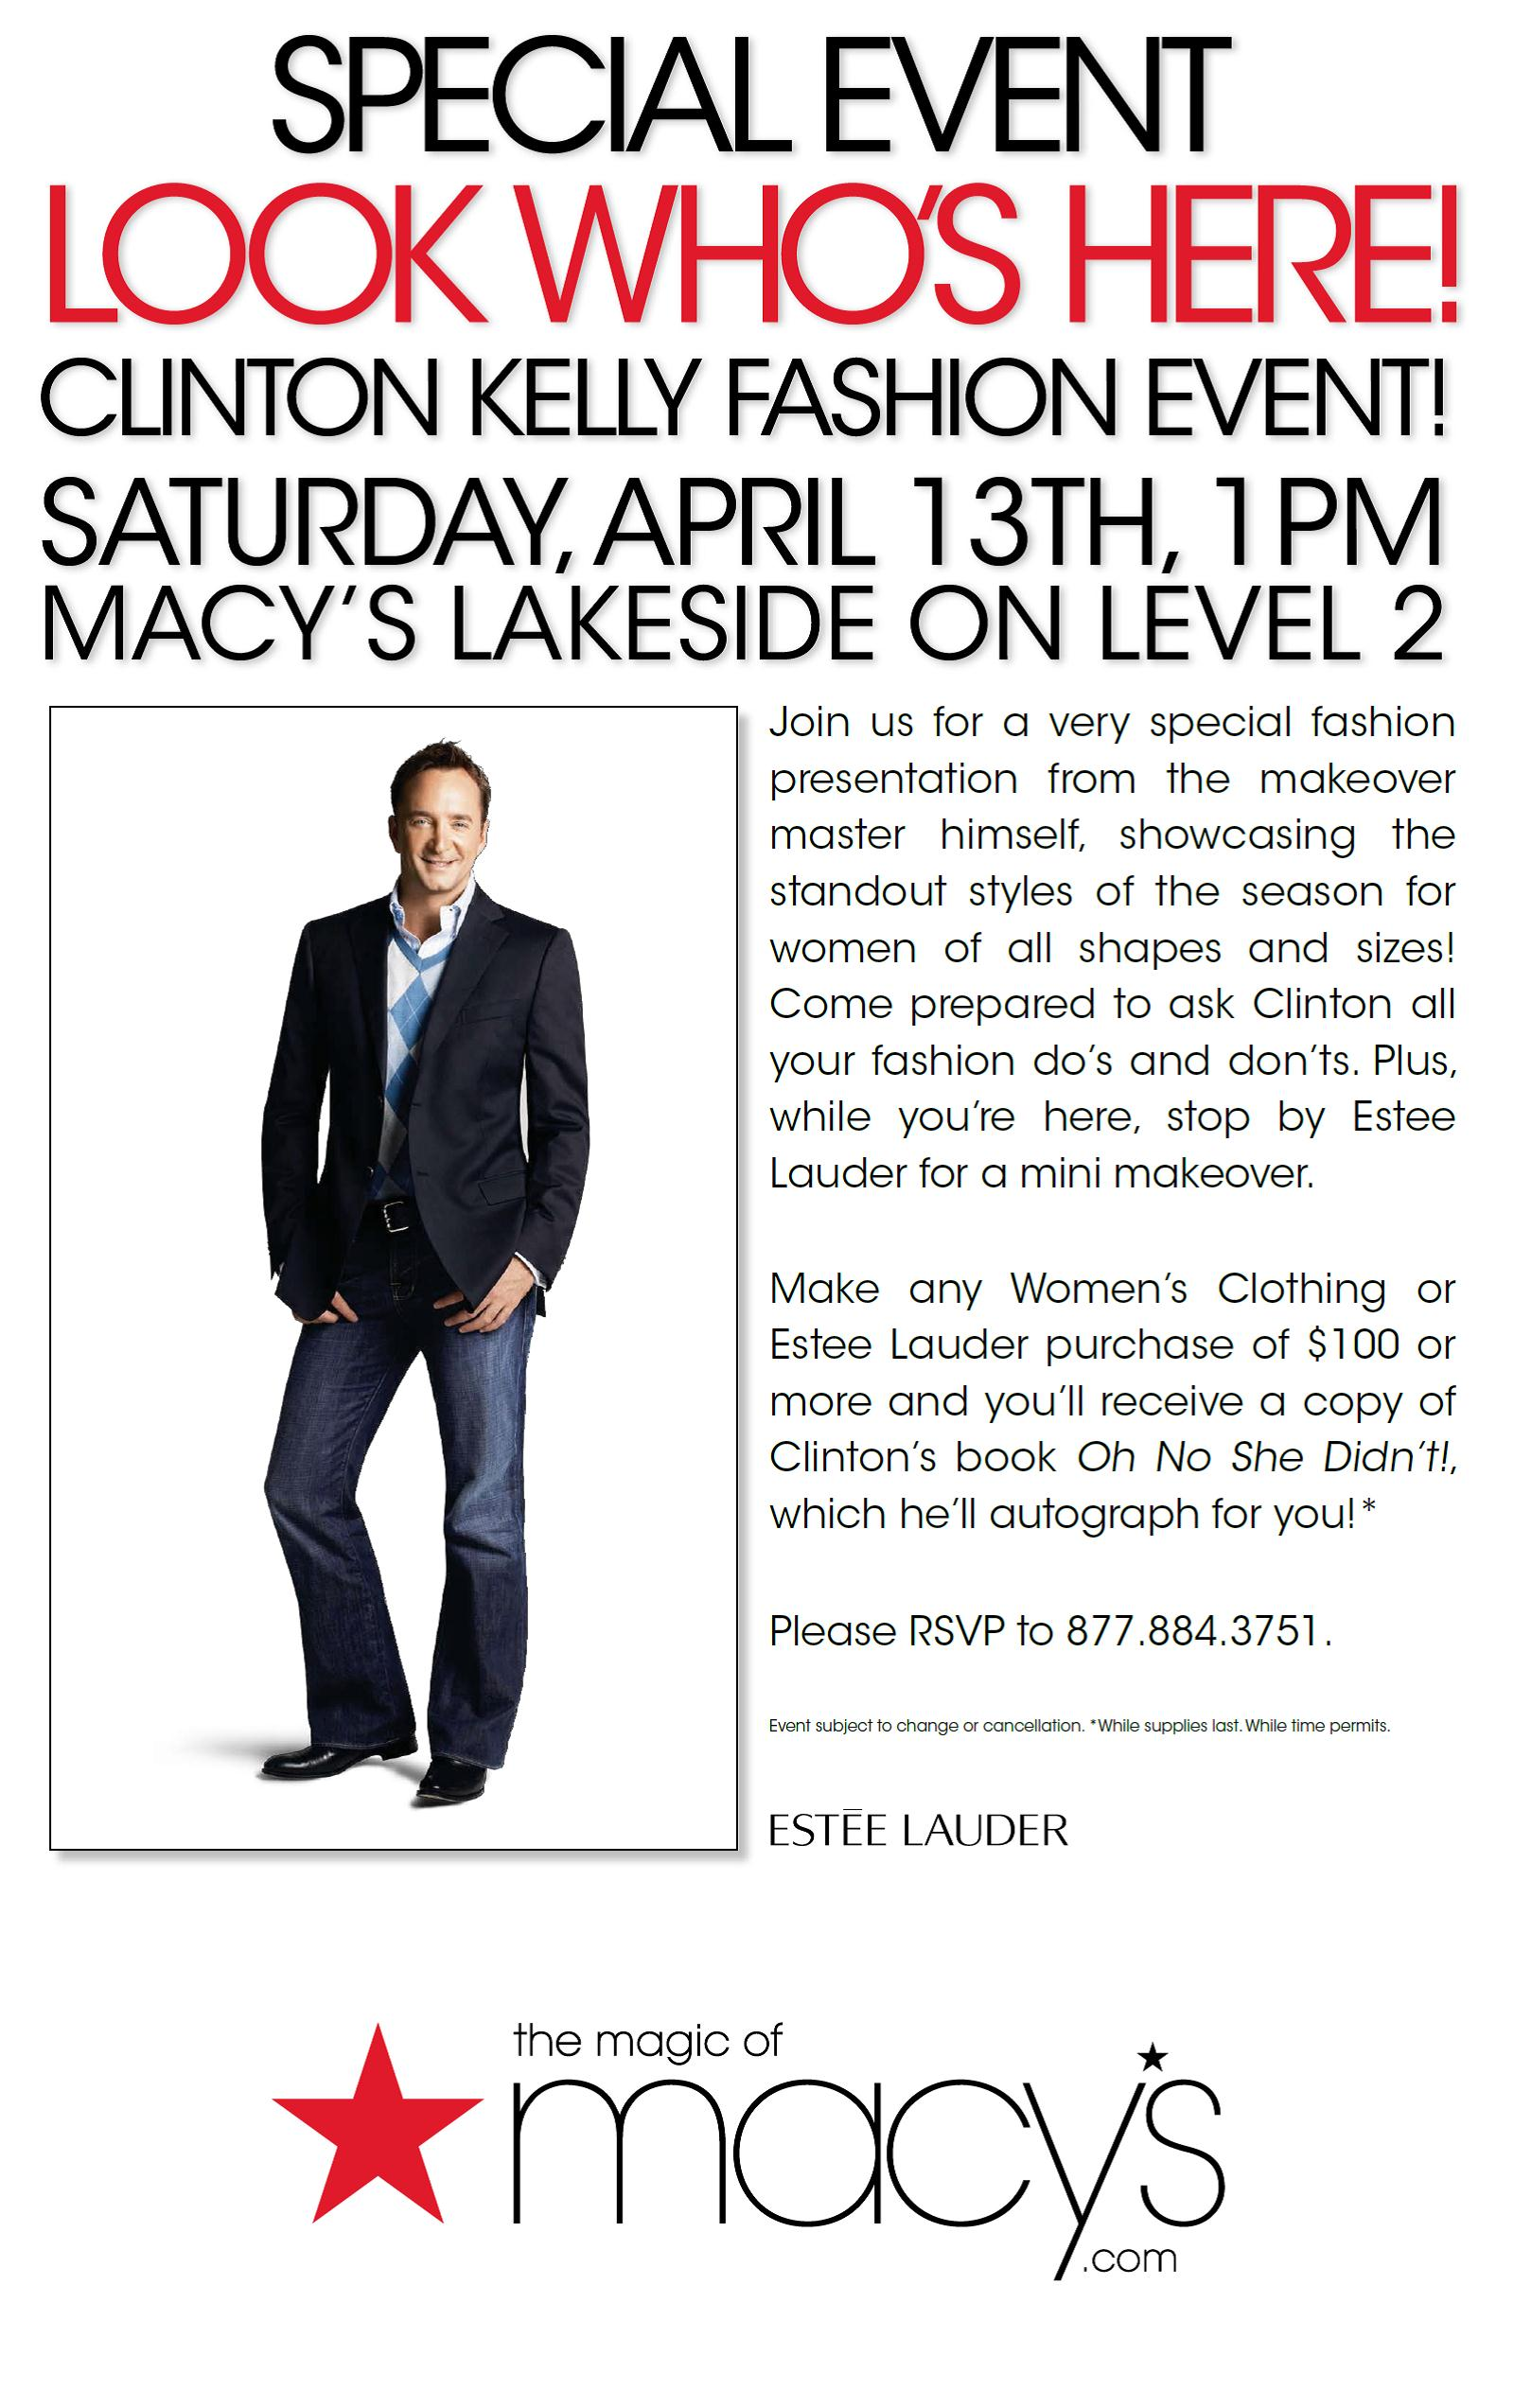 Clinton Kelly at Macy's Lakeside Saturday April 13th 1:00PM